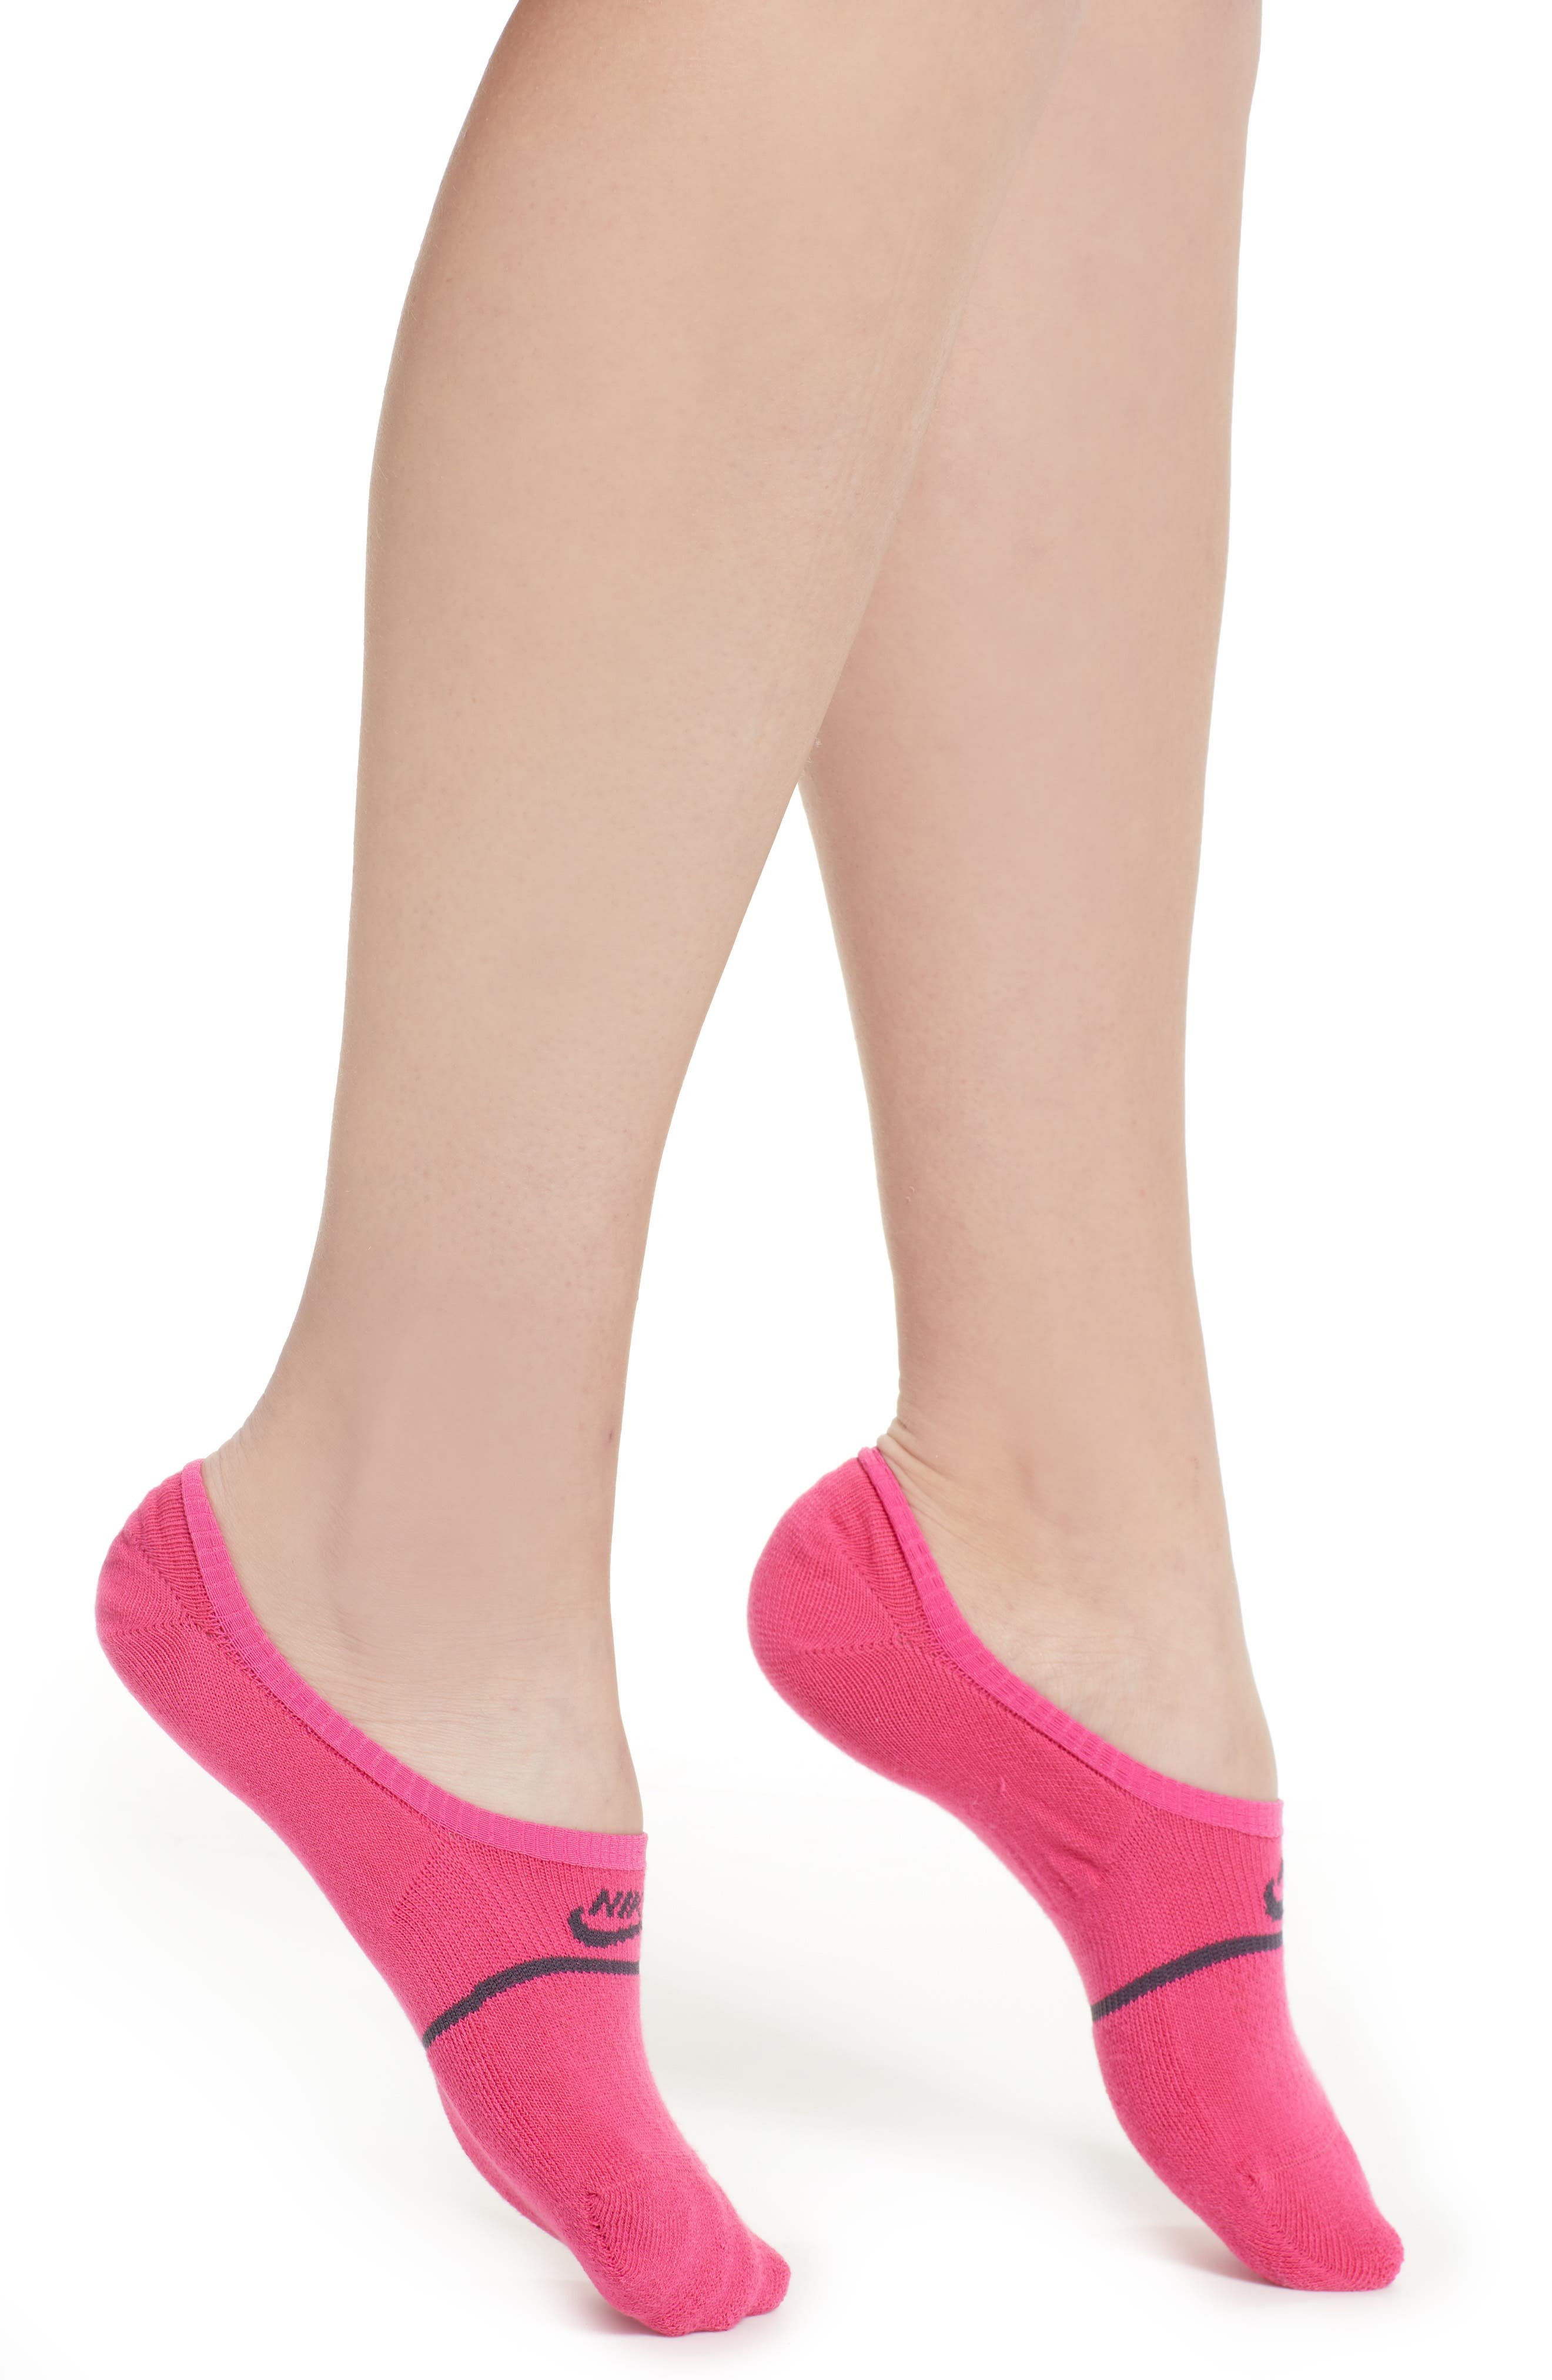 2-Pack Snkr Sox Essential No Show Socks in Watermelon/ Gridiron